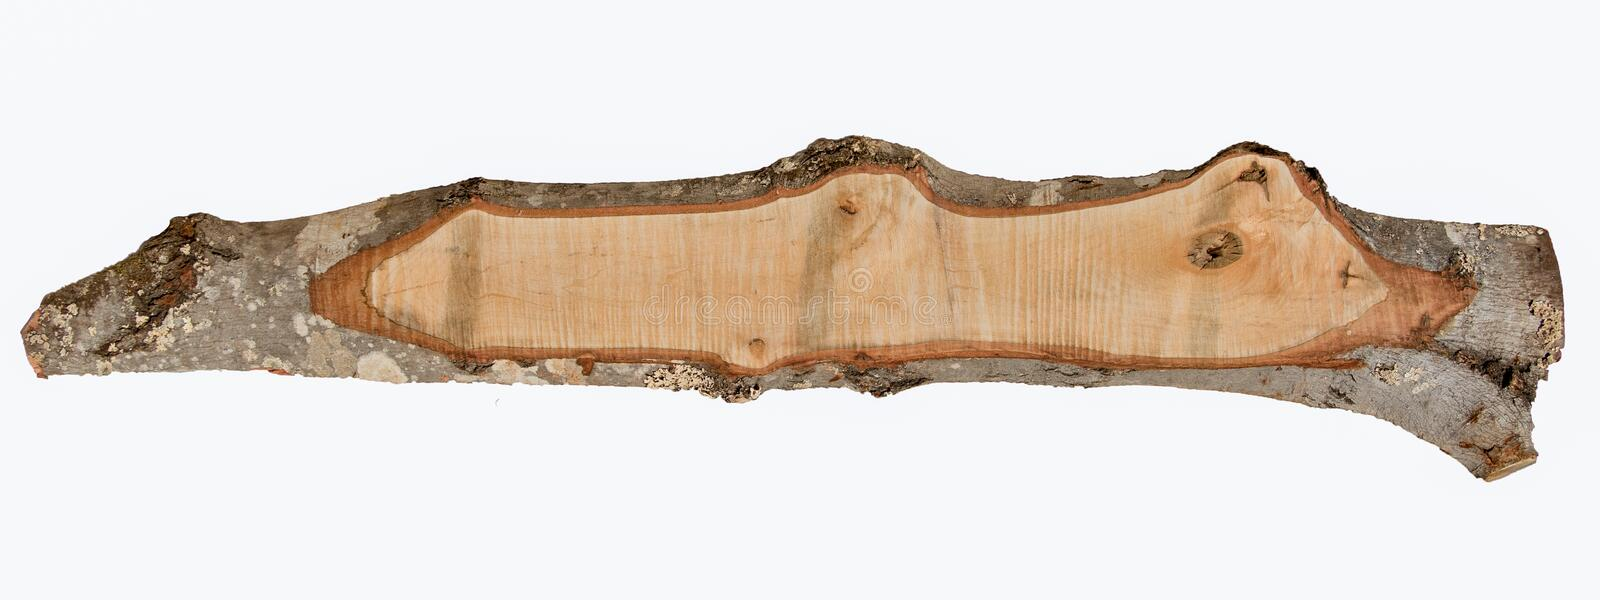 Isolated rough sawn red maple board with bark edge royalty free stock images